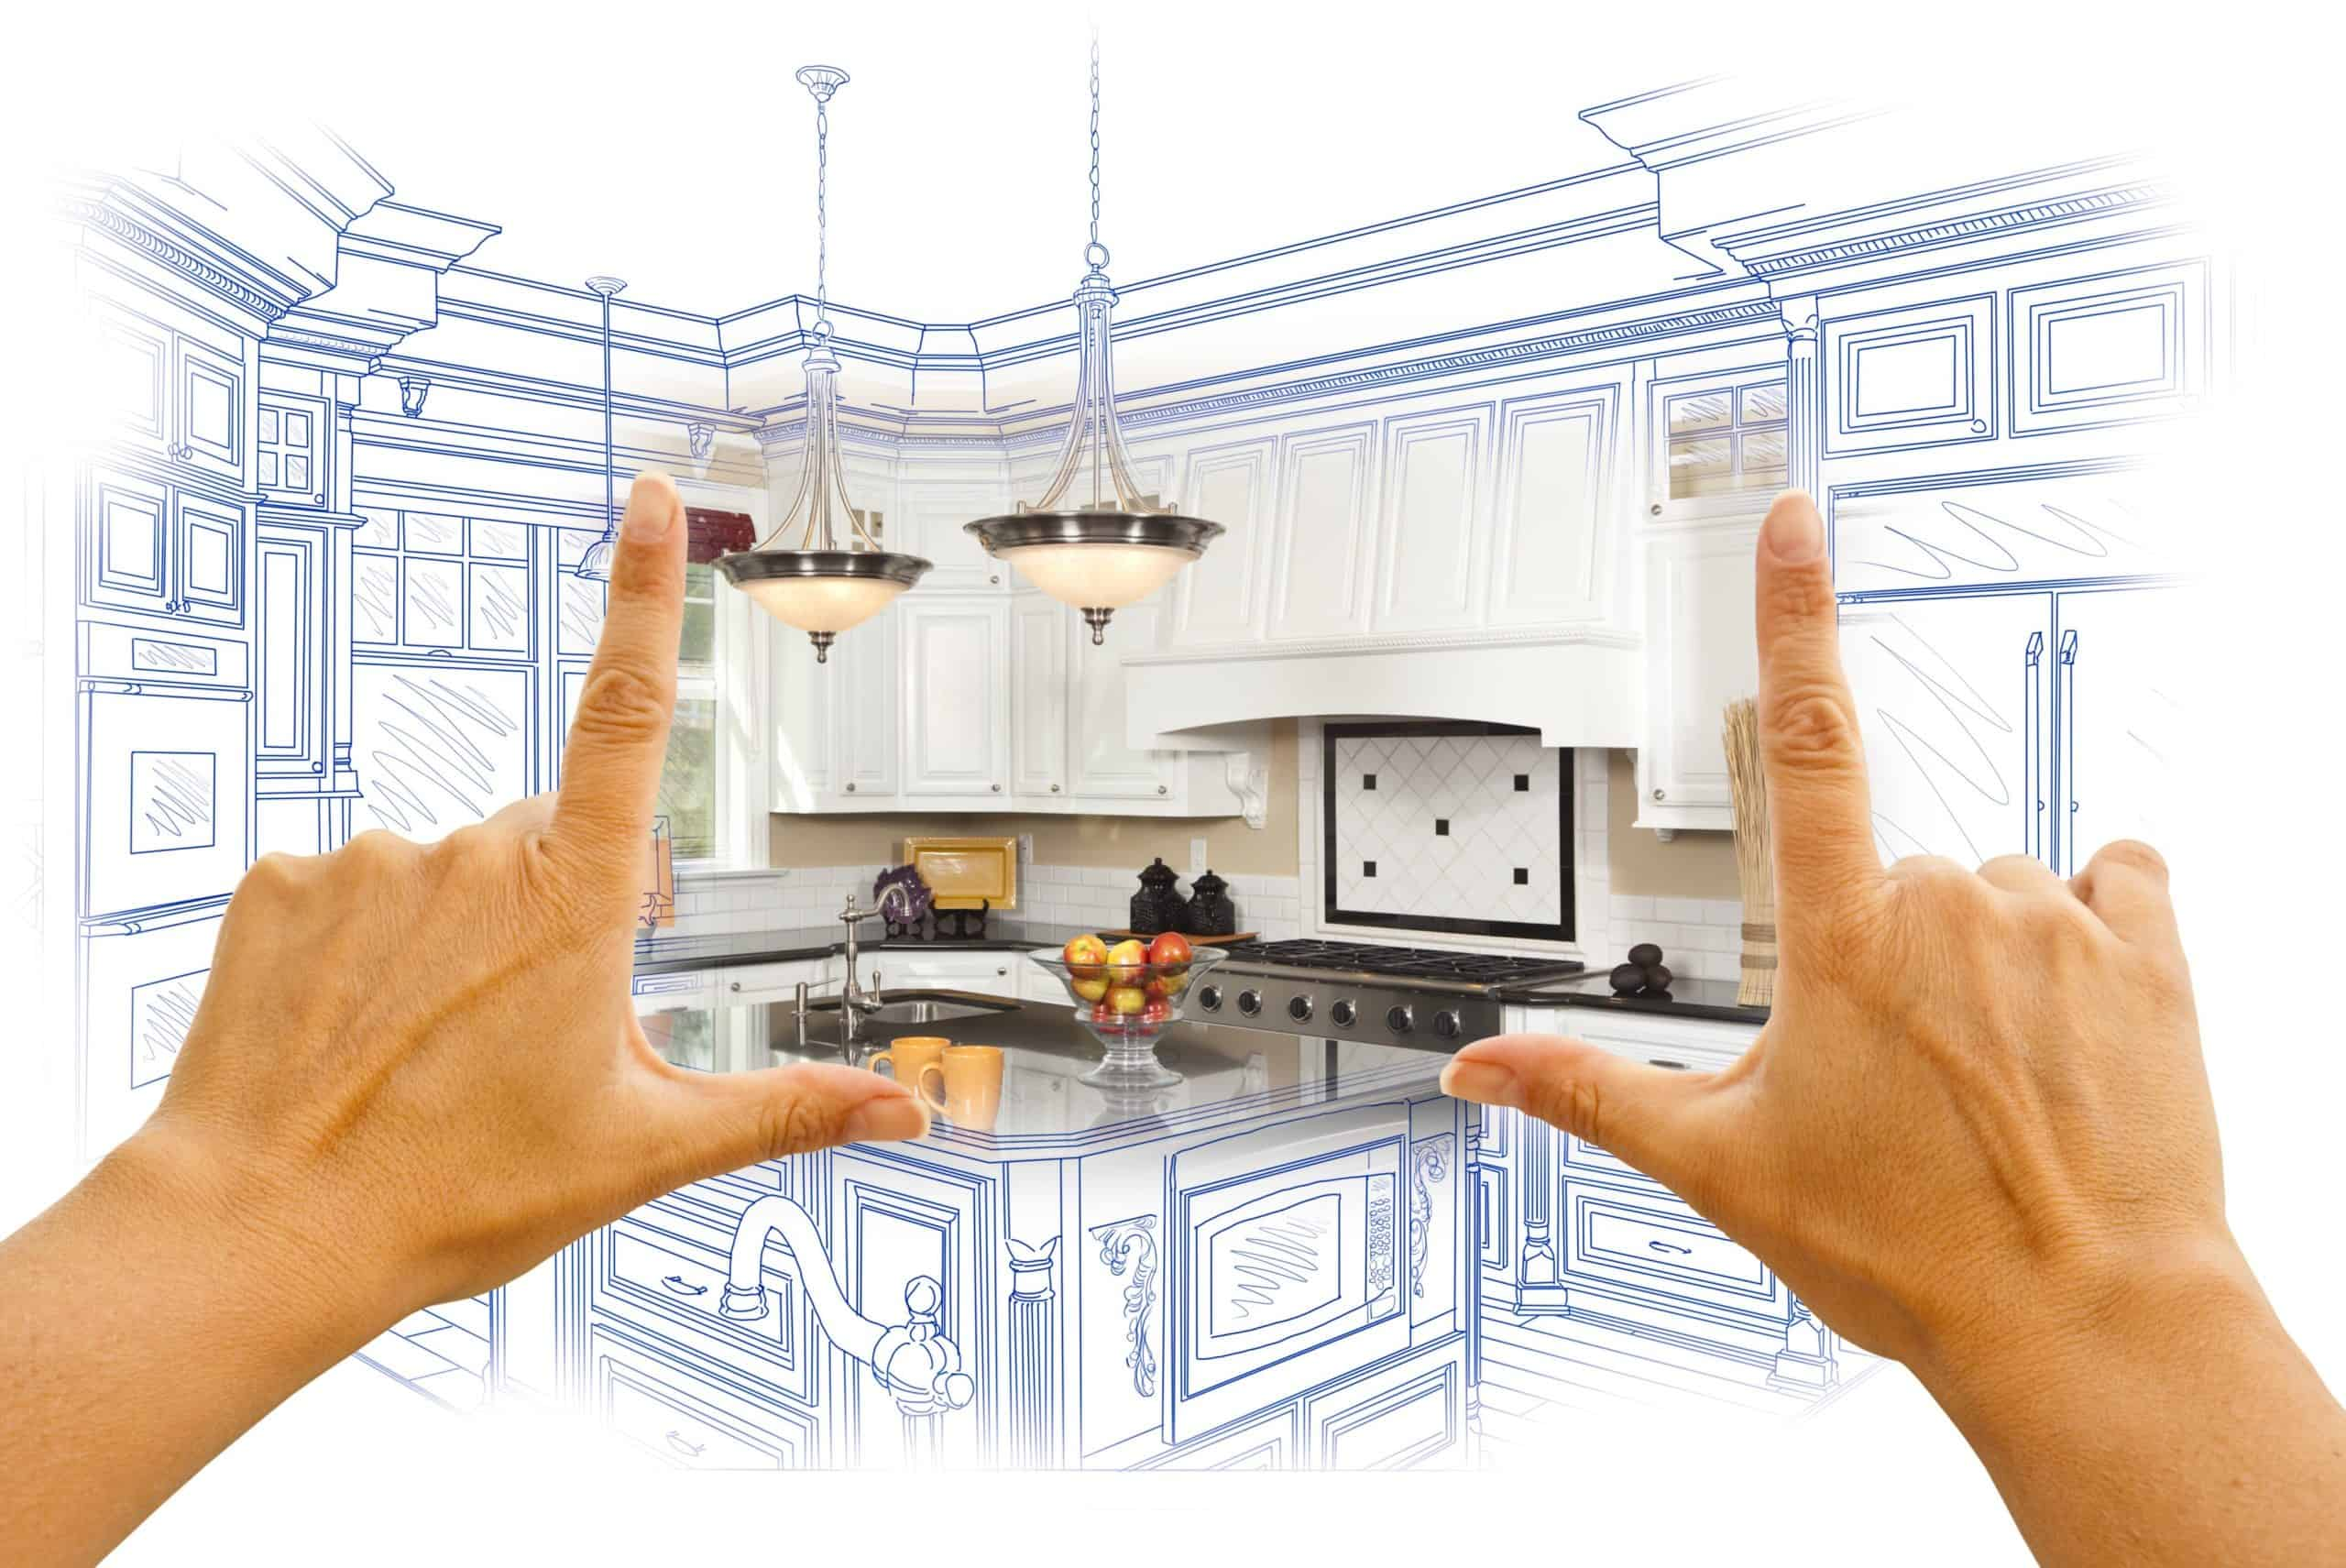 Taking Advantage of COVID-19: Smart Home Renovations You Can Make in Under A Month